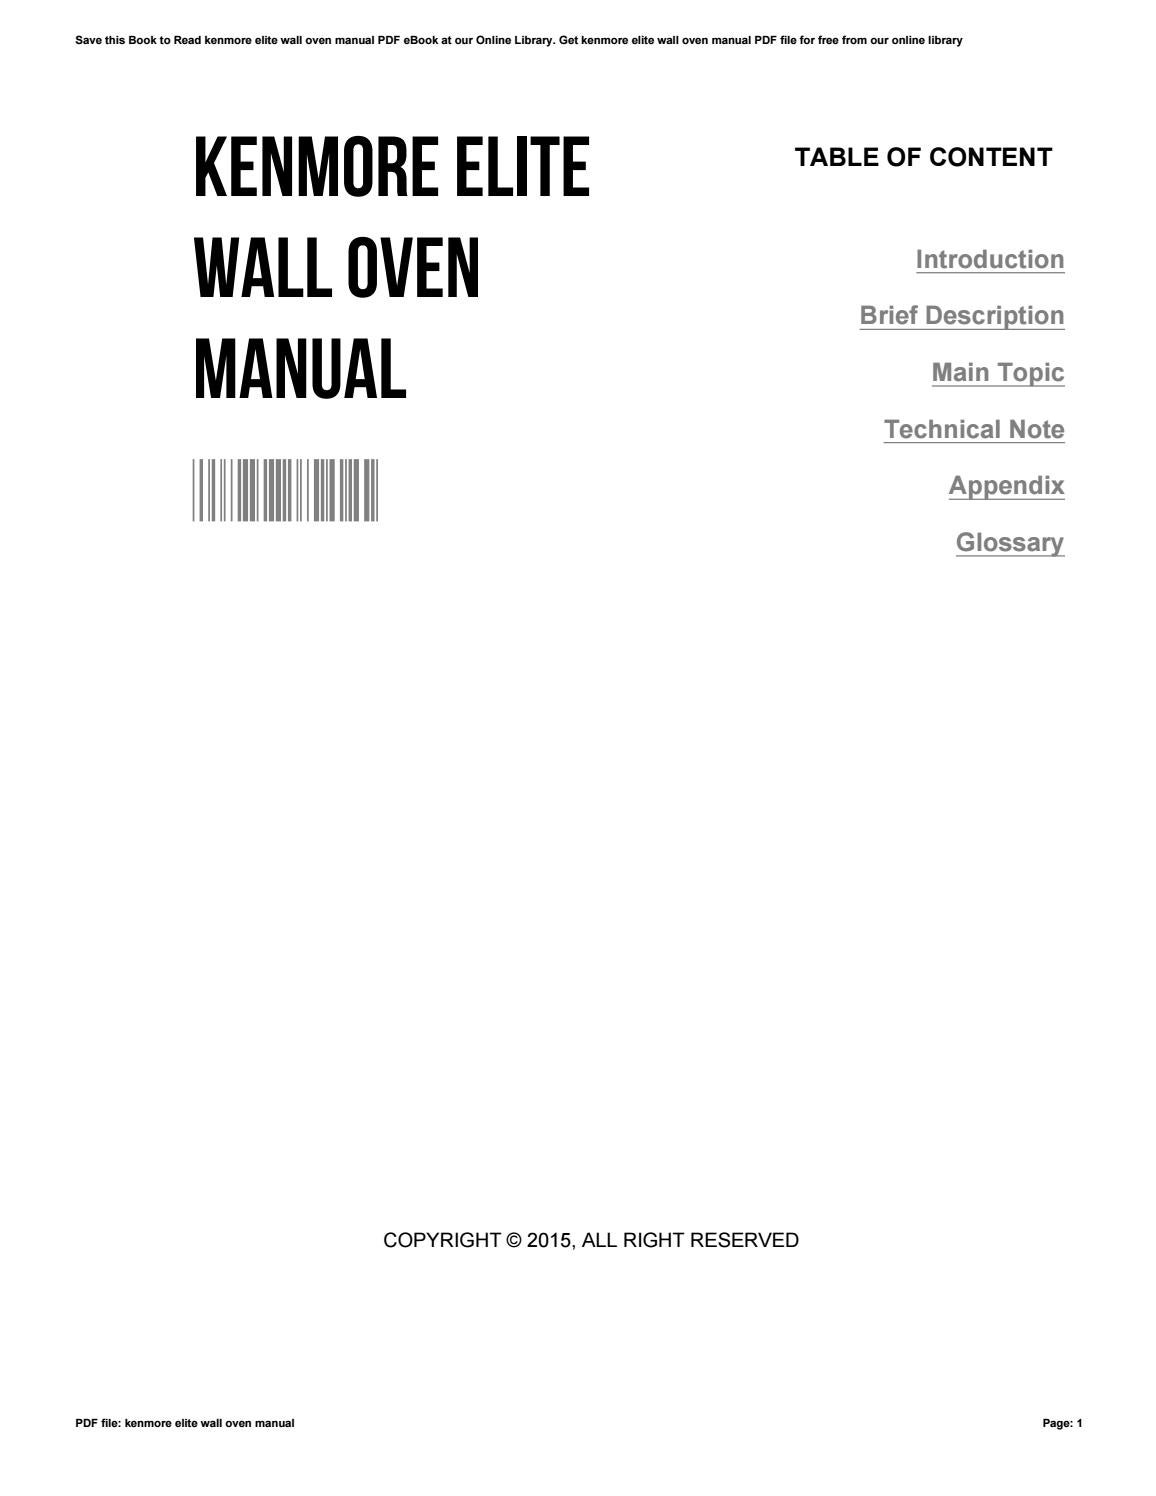 Kenmore Elite Wall Oven Manual By Maureenhillman3843 Issuu